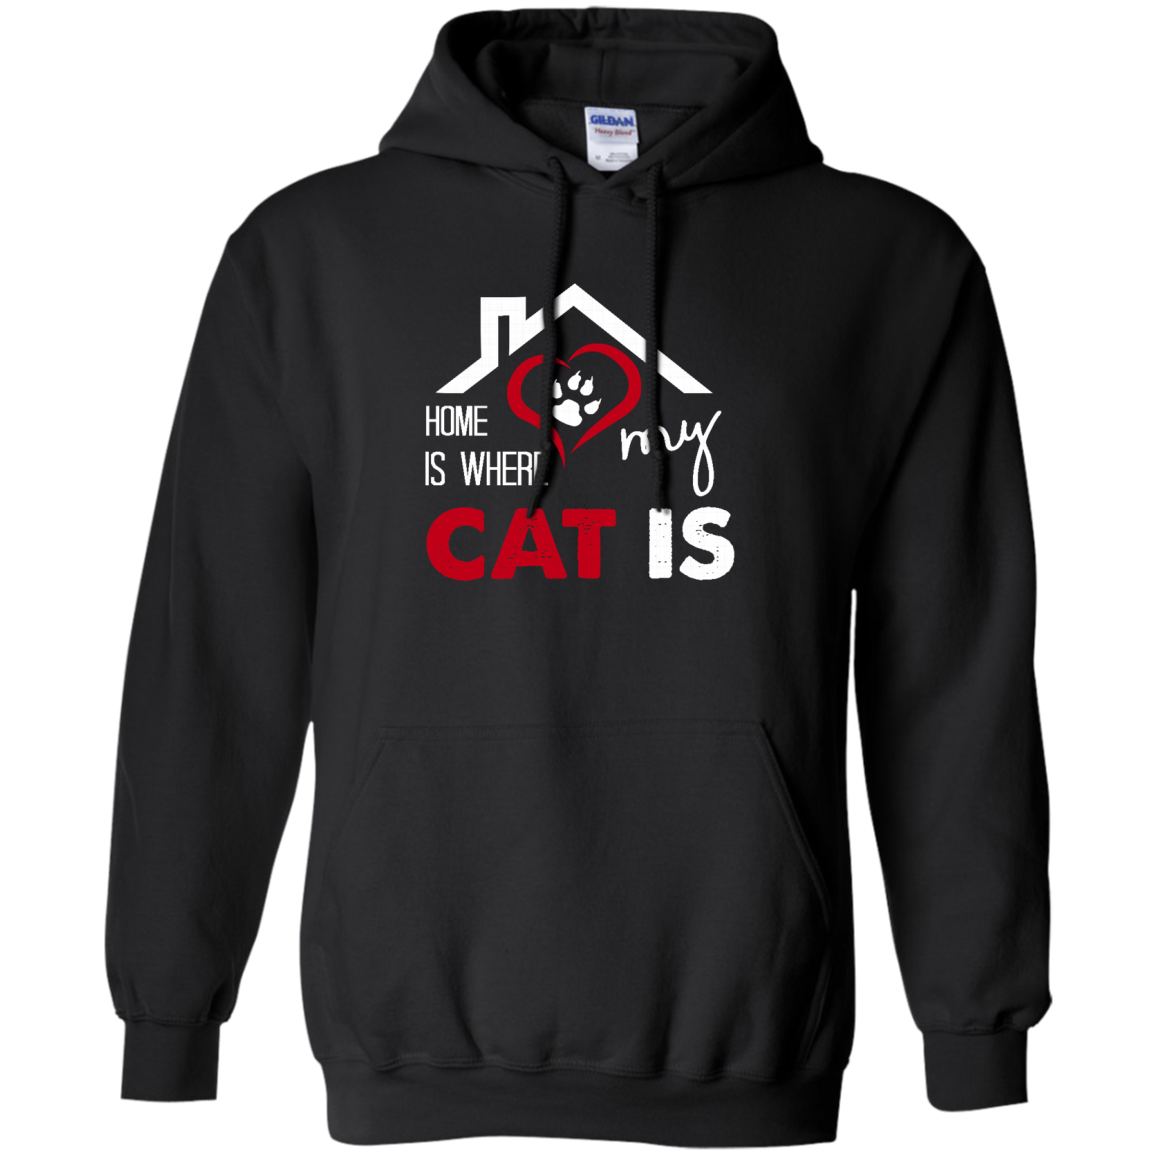 Cat Hoodie Home is Where My Cat Is like as a gift for who loves Cat  yourself  friends on birthday  christmas or Occasions